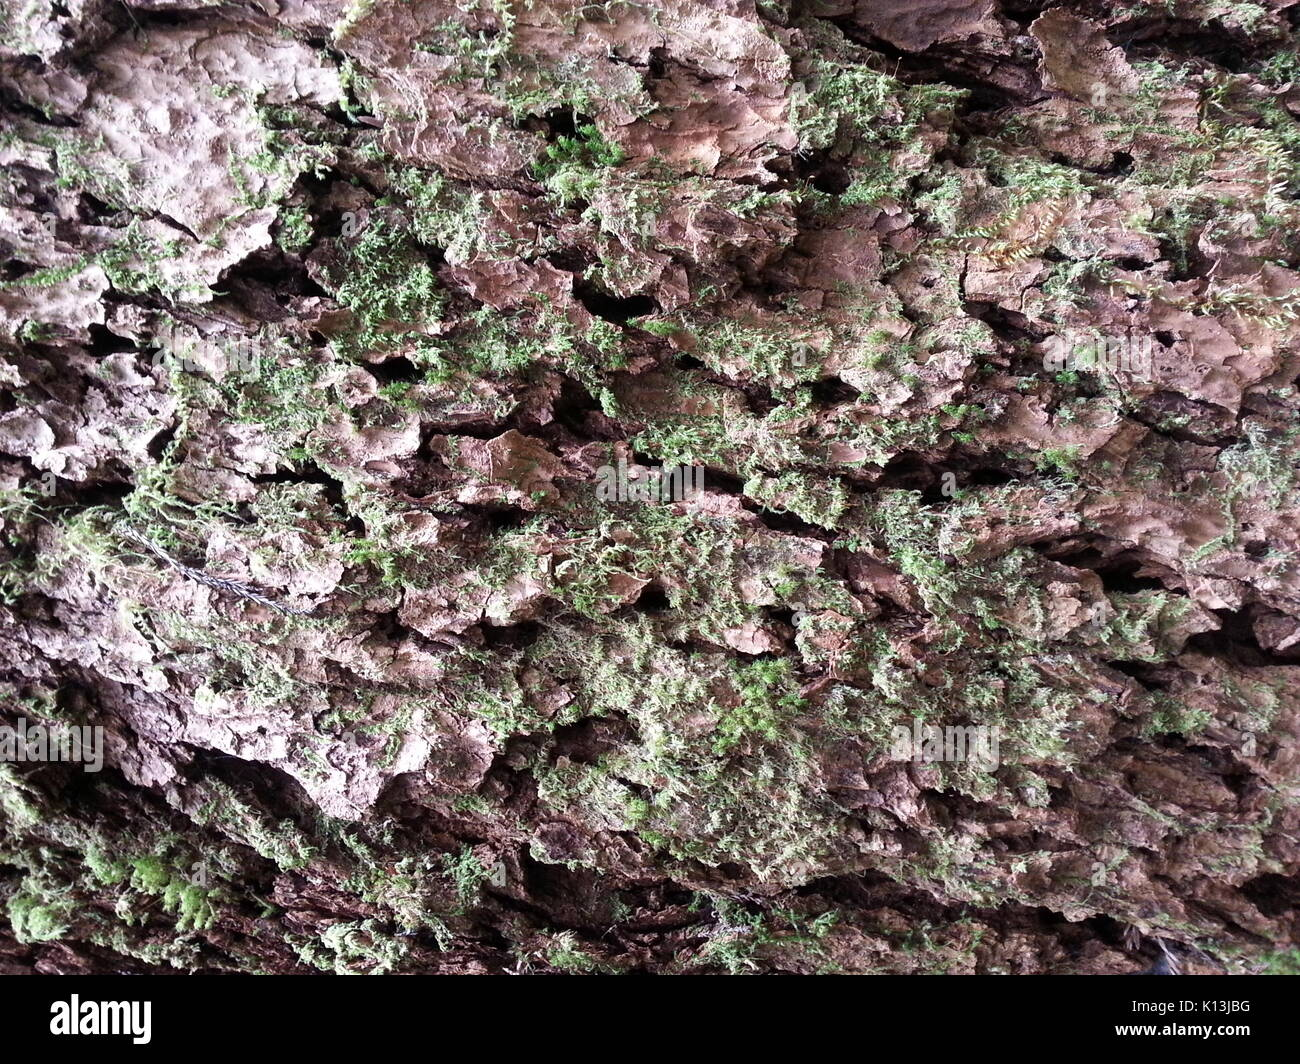 Mossy Wood Texture 5 - Stock Image